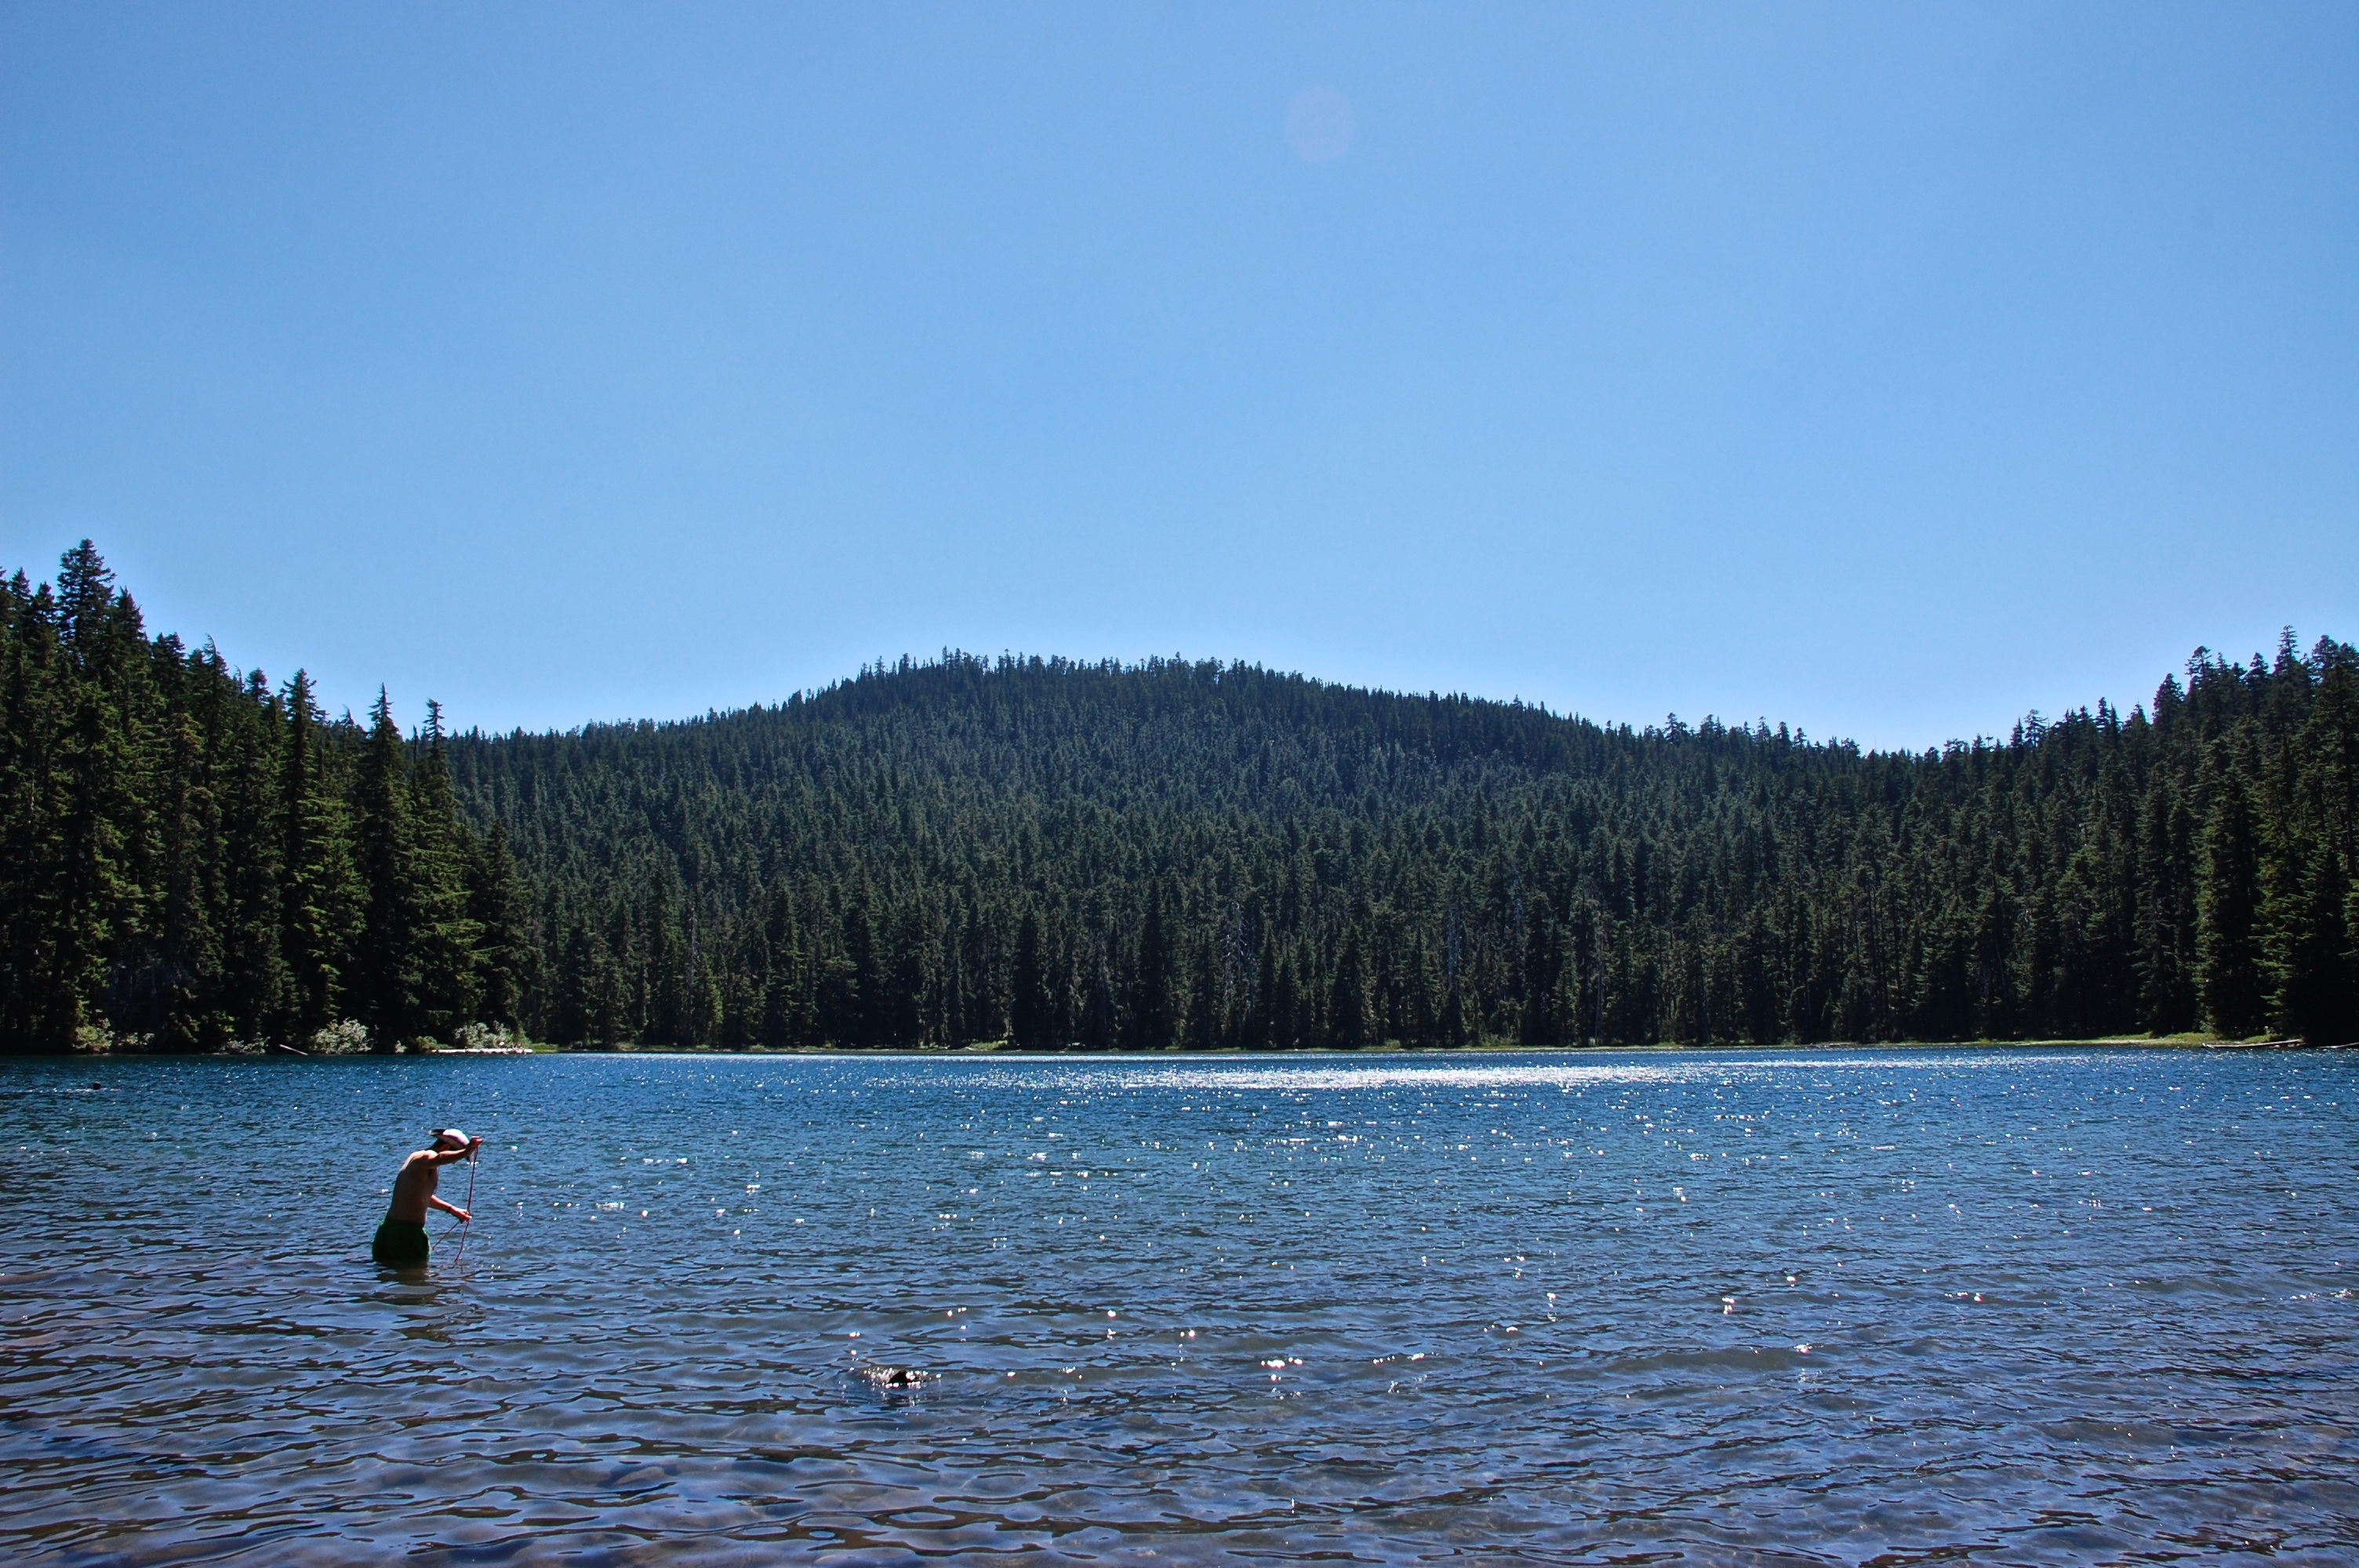 july 4th in mount hood national forest.